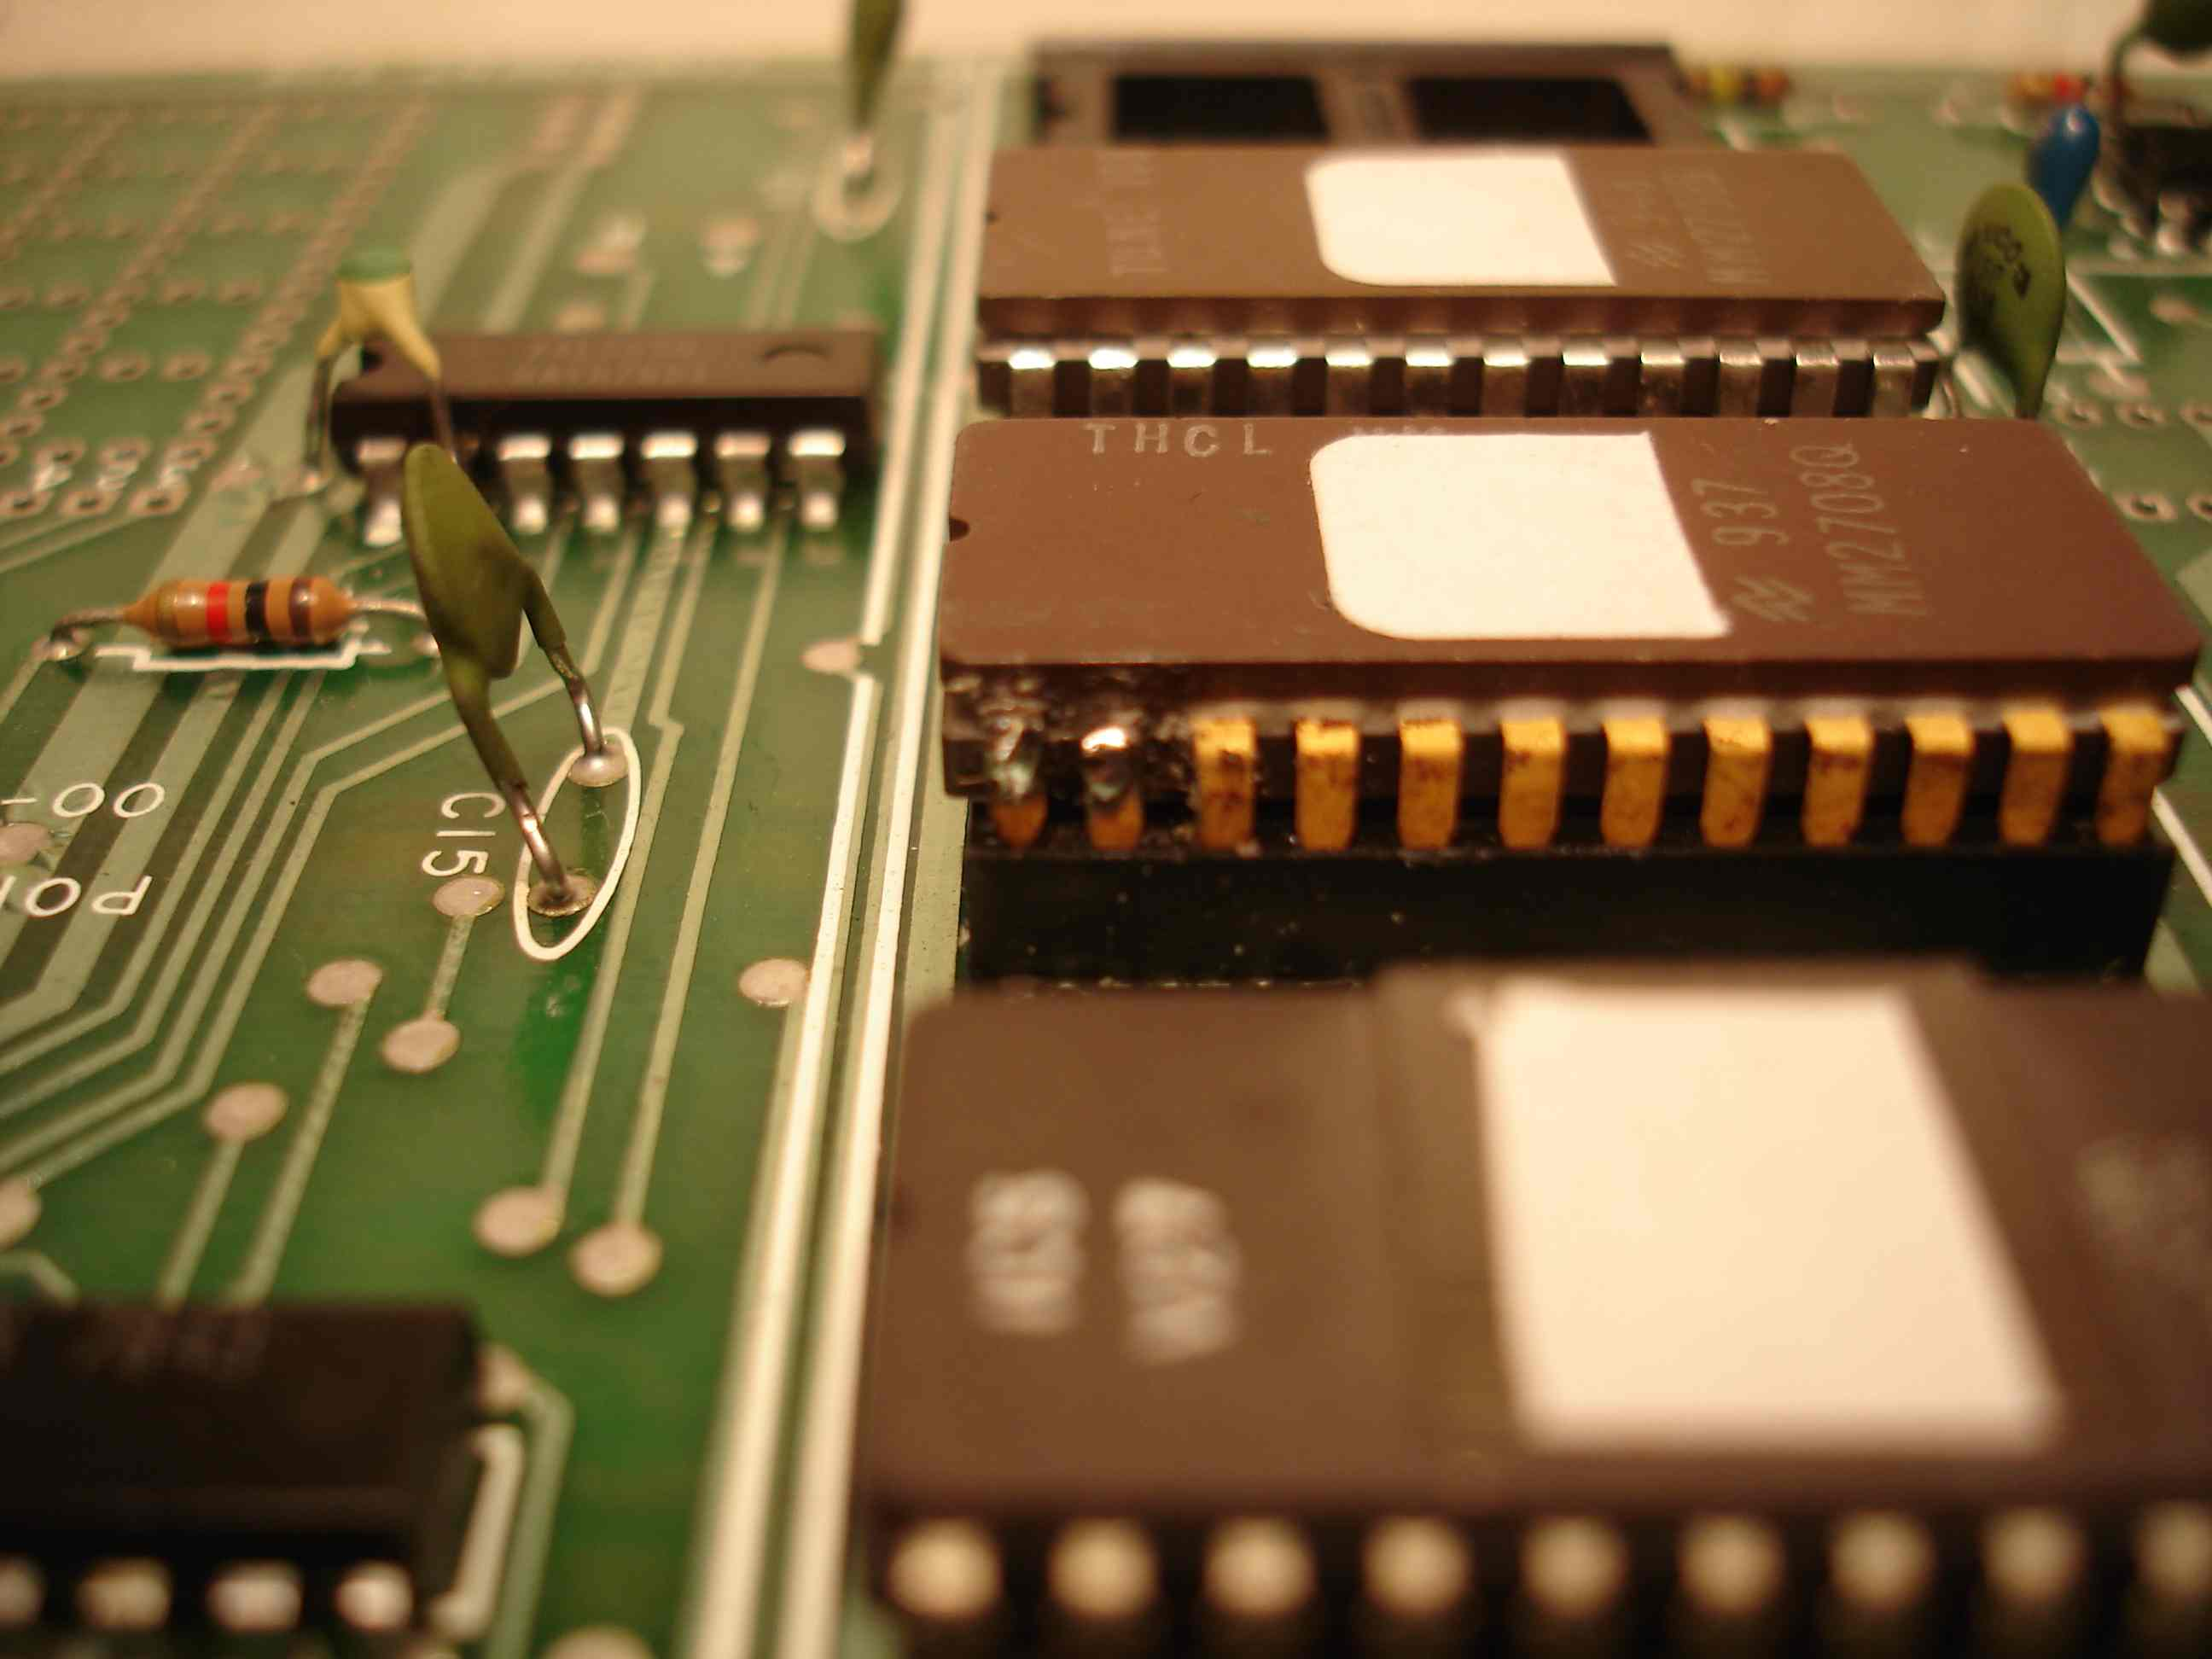 eprom repaired broken pin1 .JPG